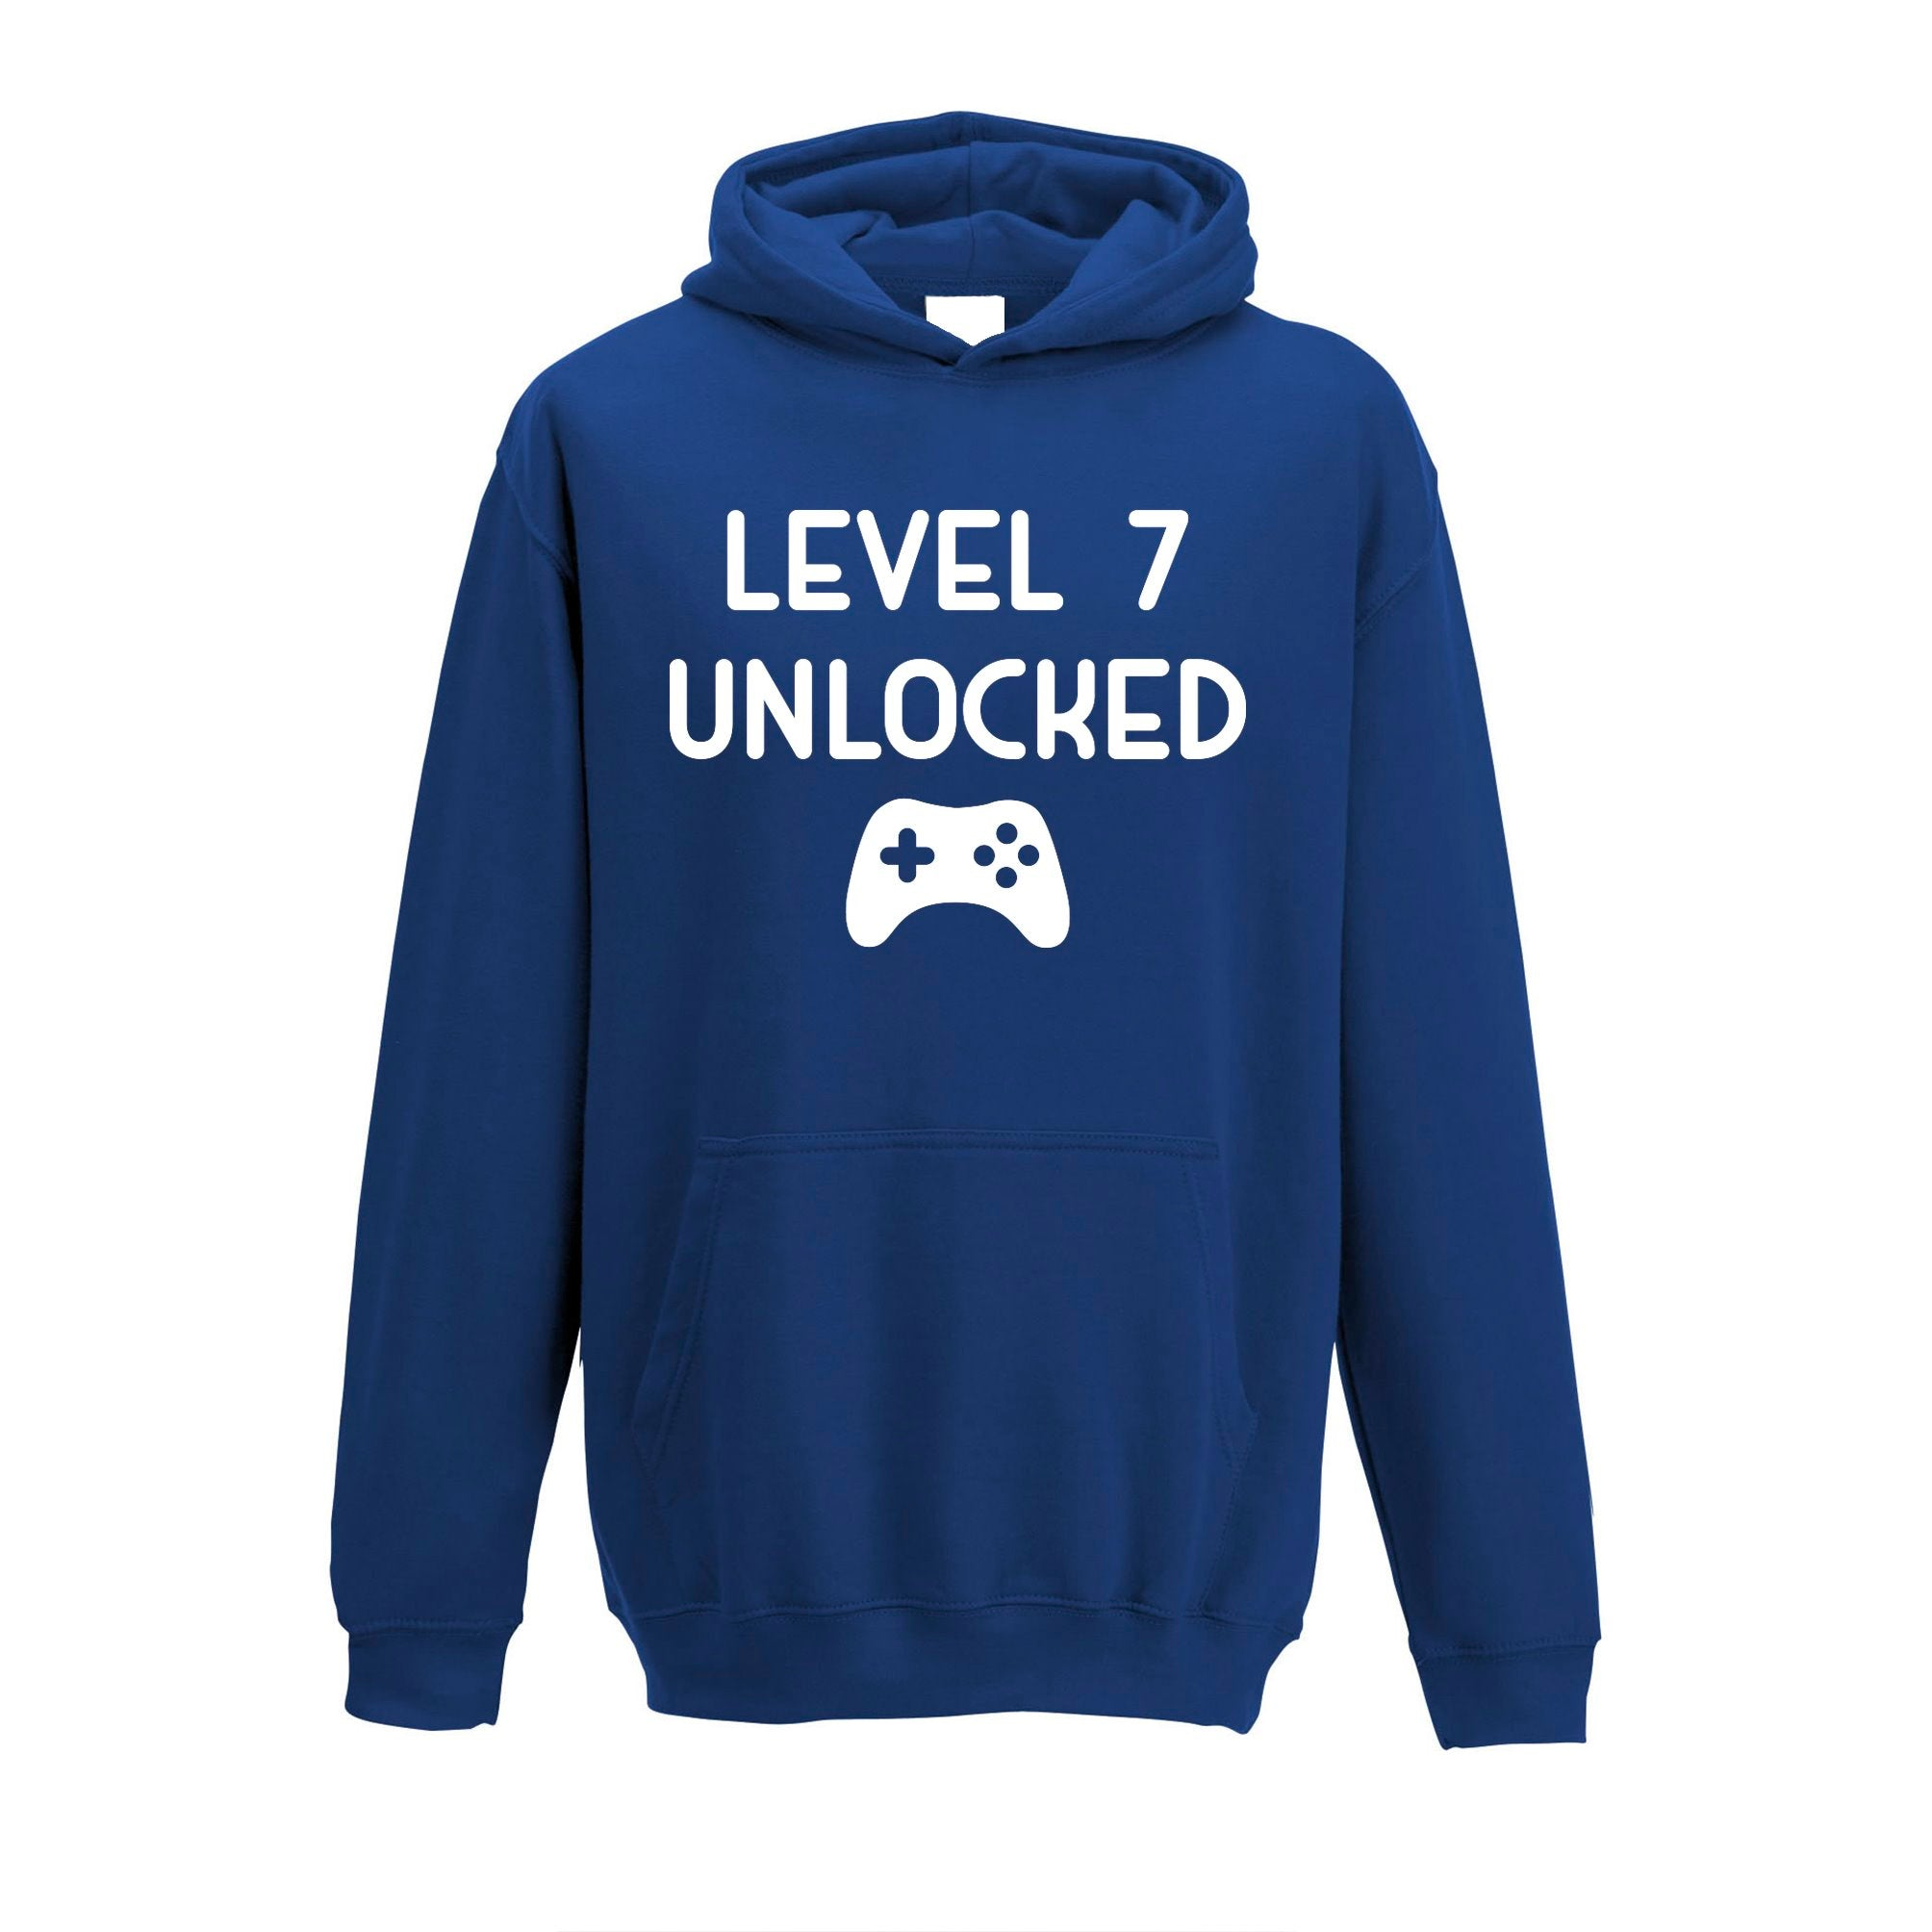 Gamers 7th Birthday Kids Hoodie Level 7 Unlocked Kids Childs